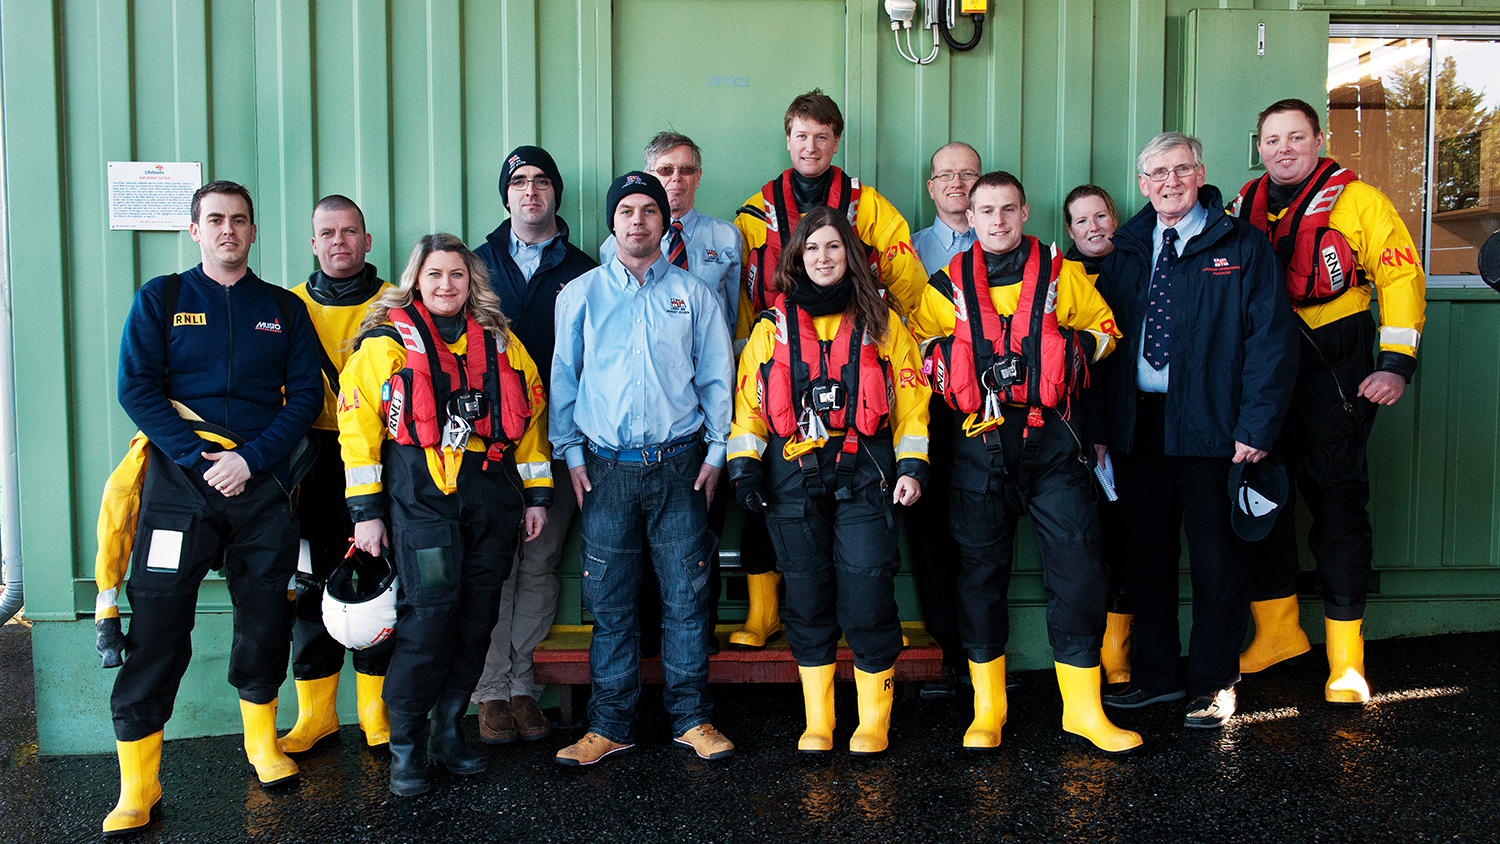 Group shot of Lough Ree crew and station volunteers.